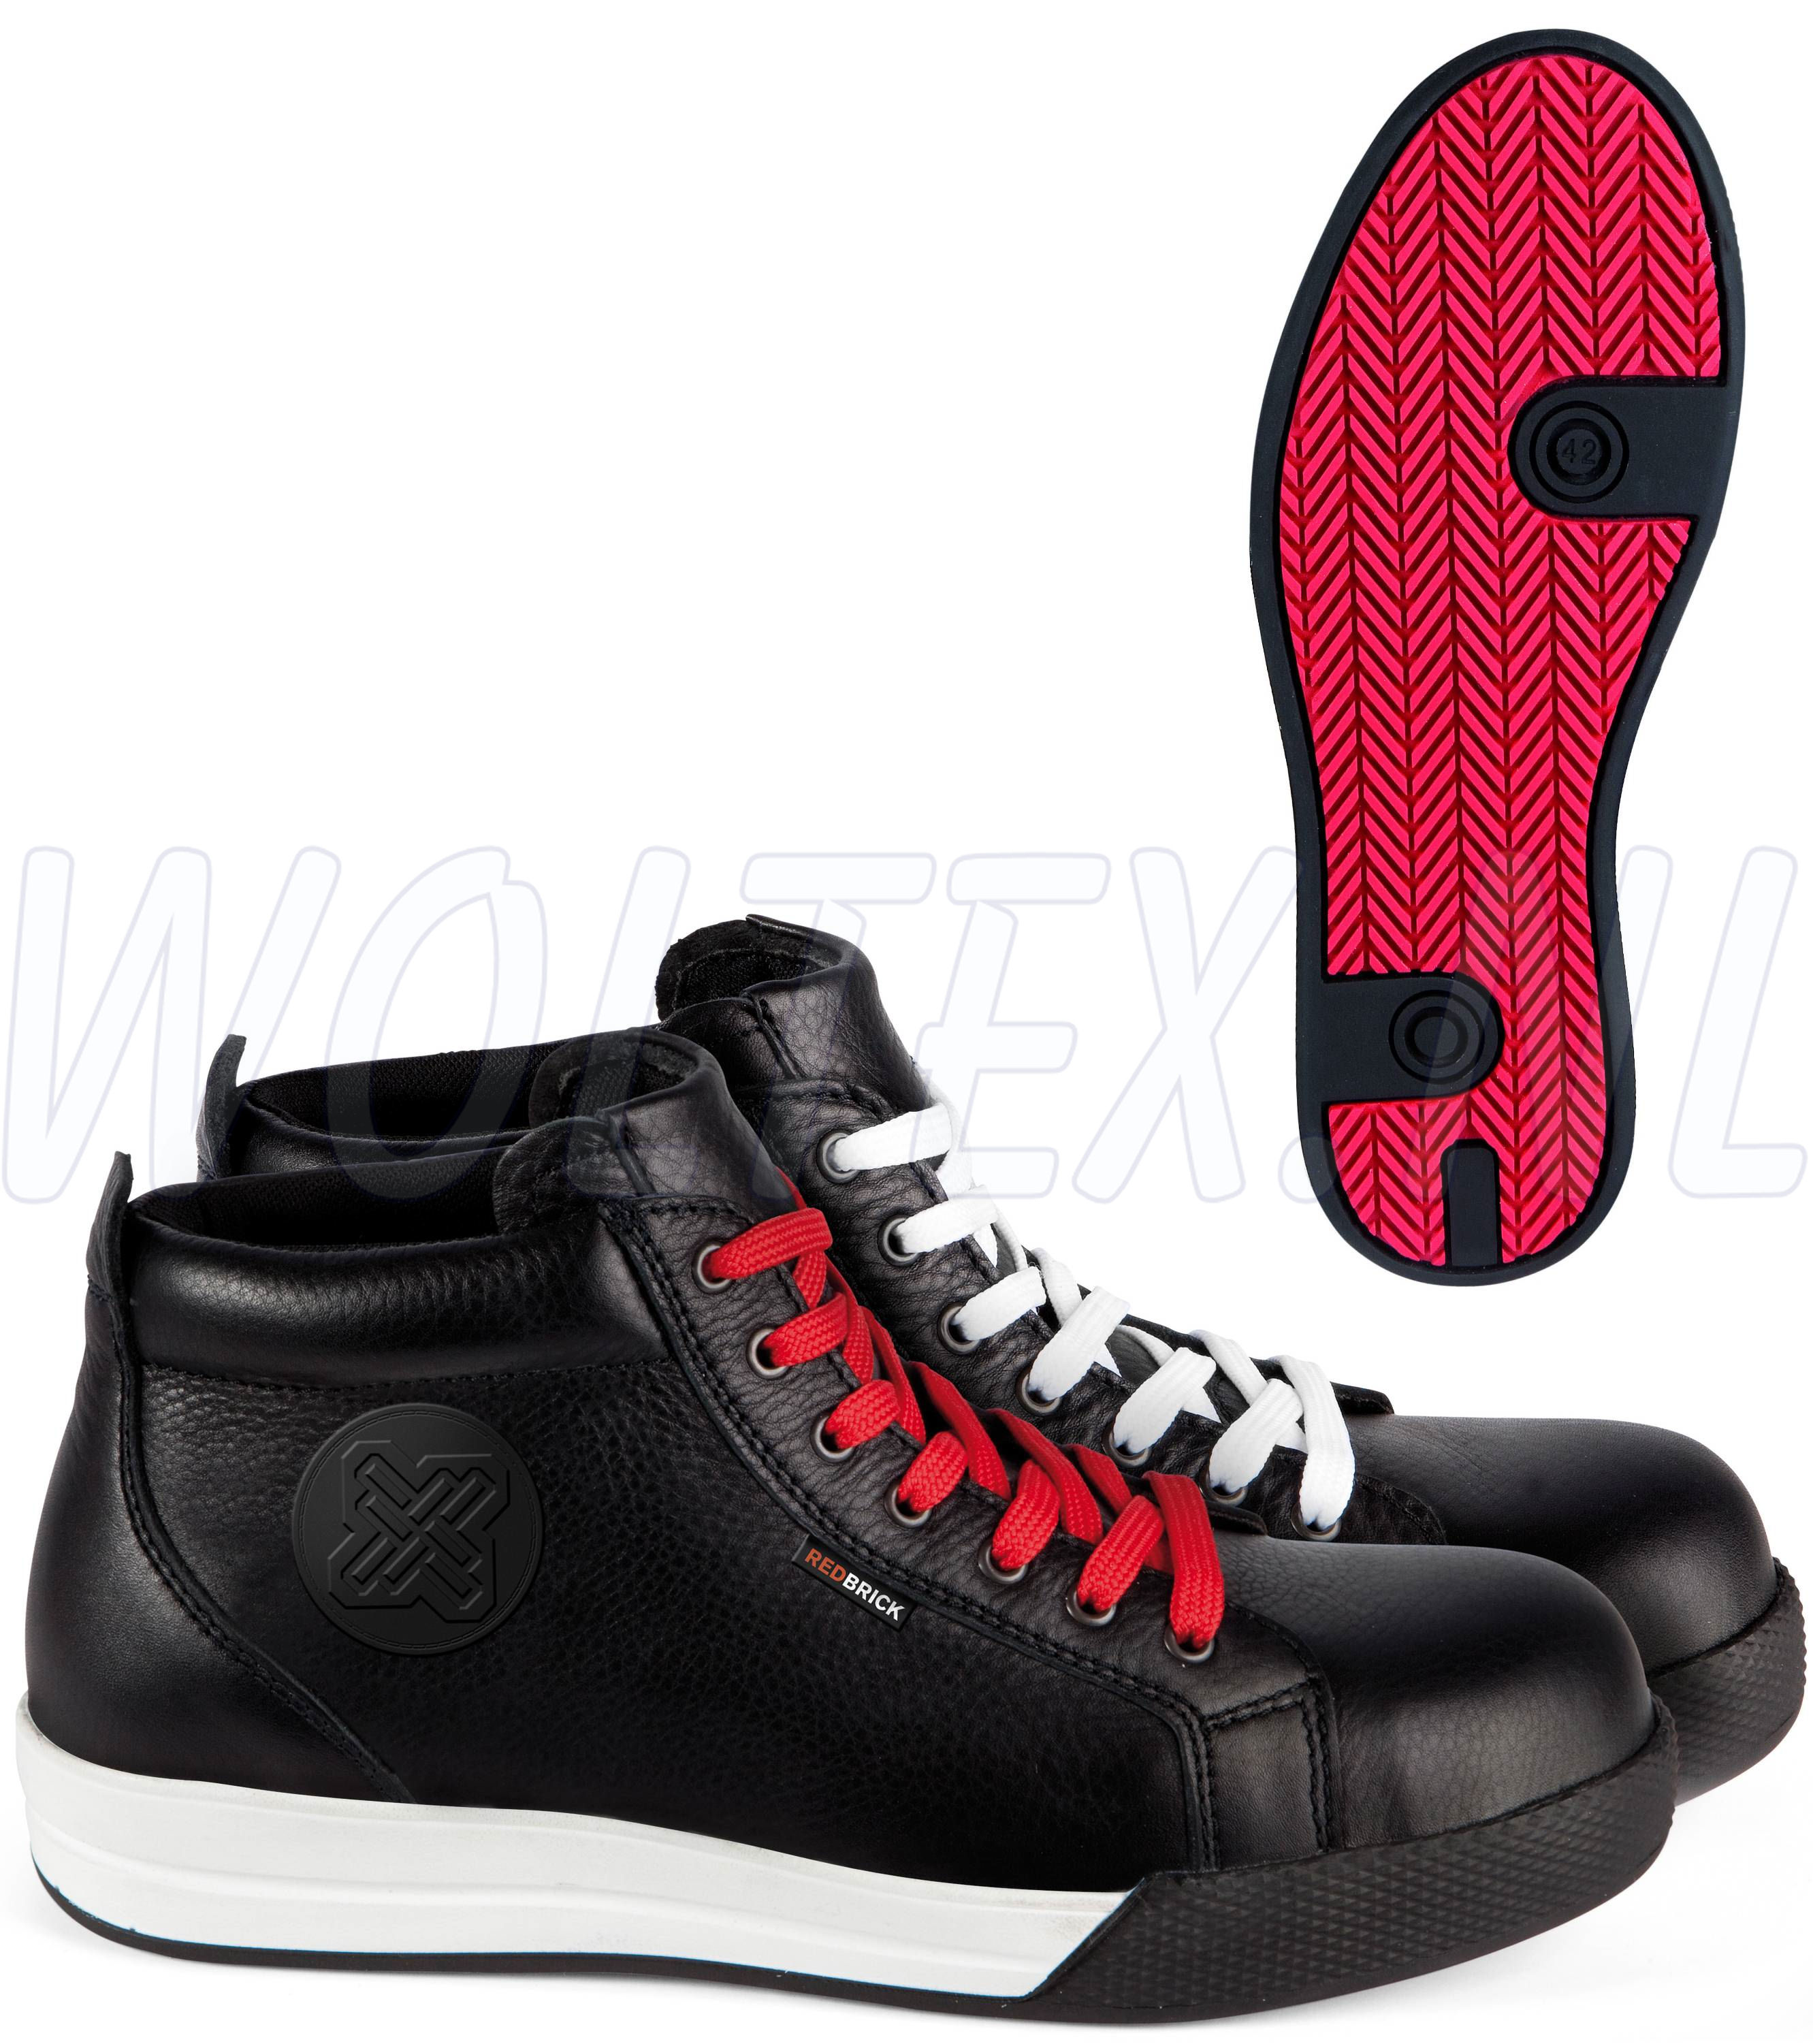 Red Bricks Werkschoenen.Safety Sneakers By Redbrick The New Trend In Safety Shoes Home